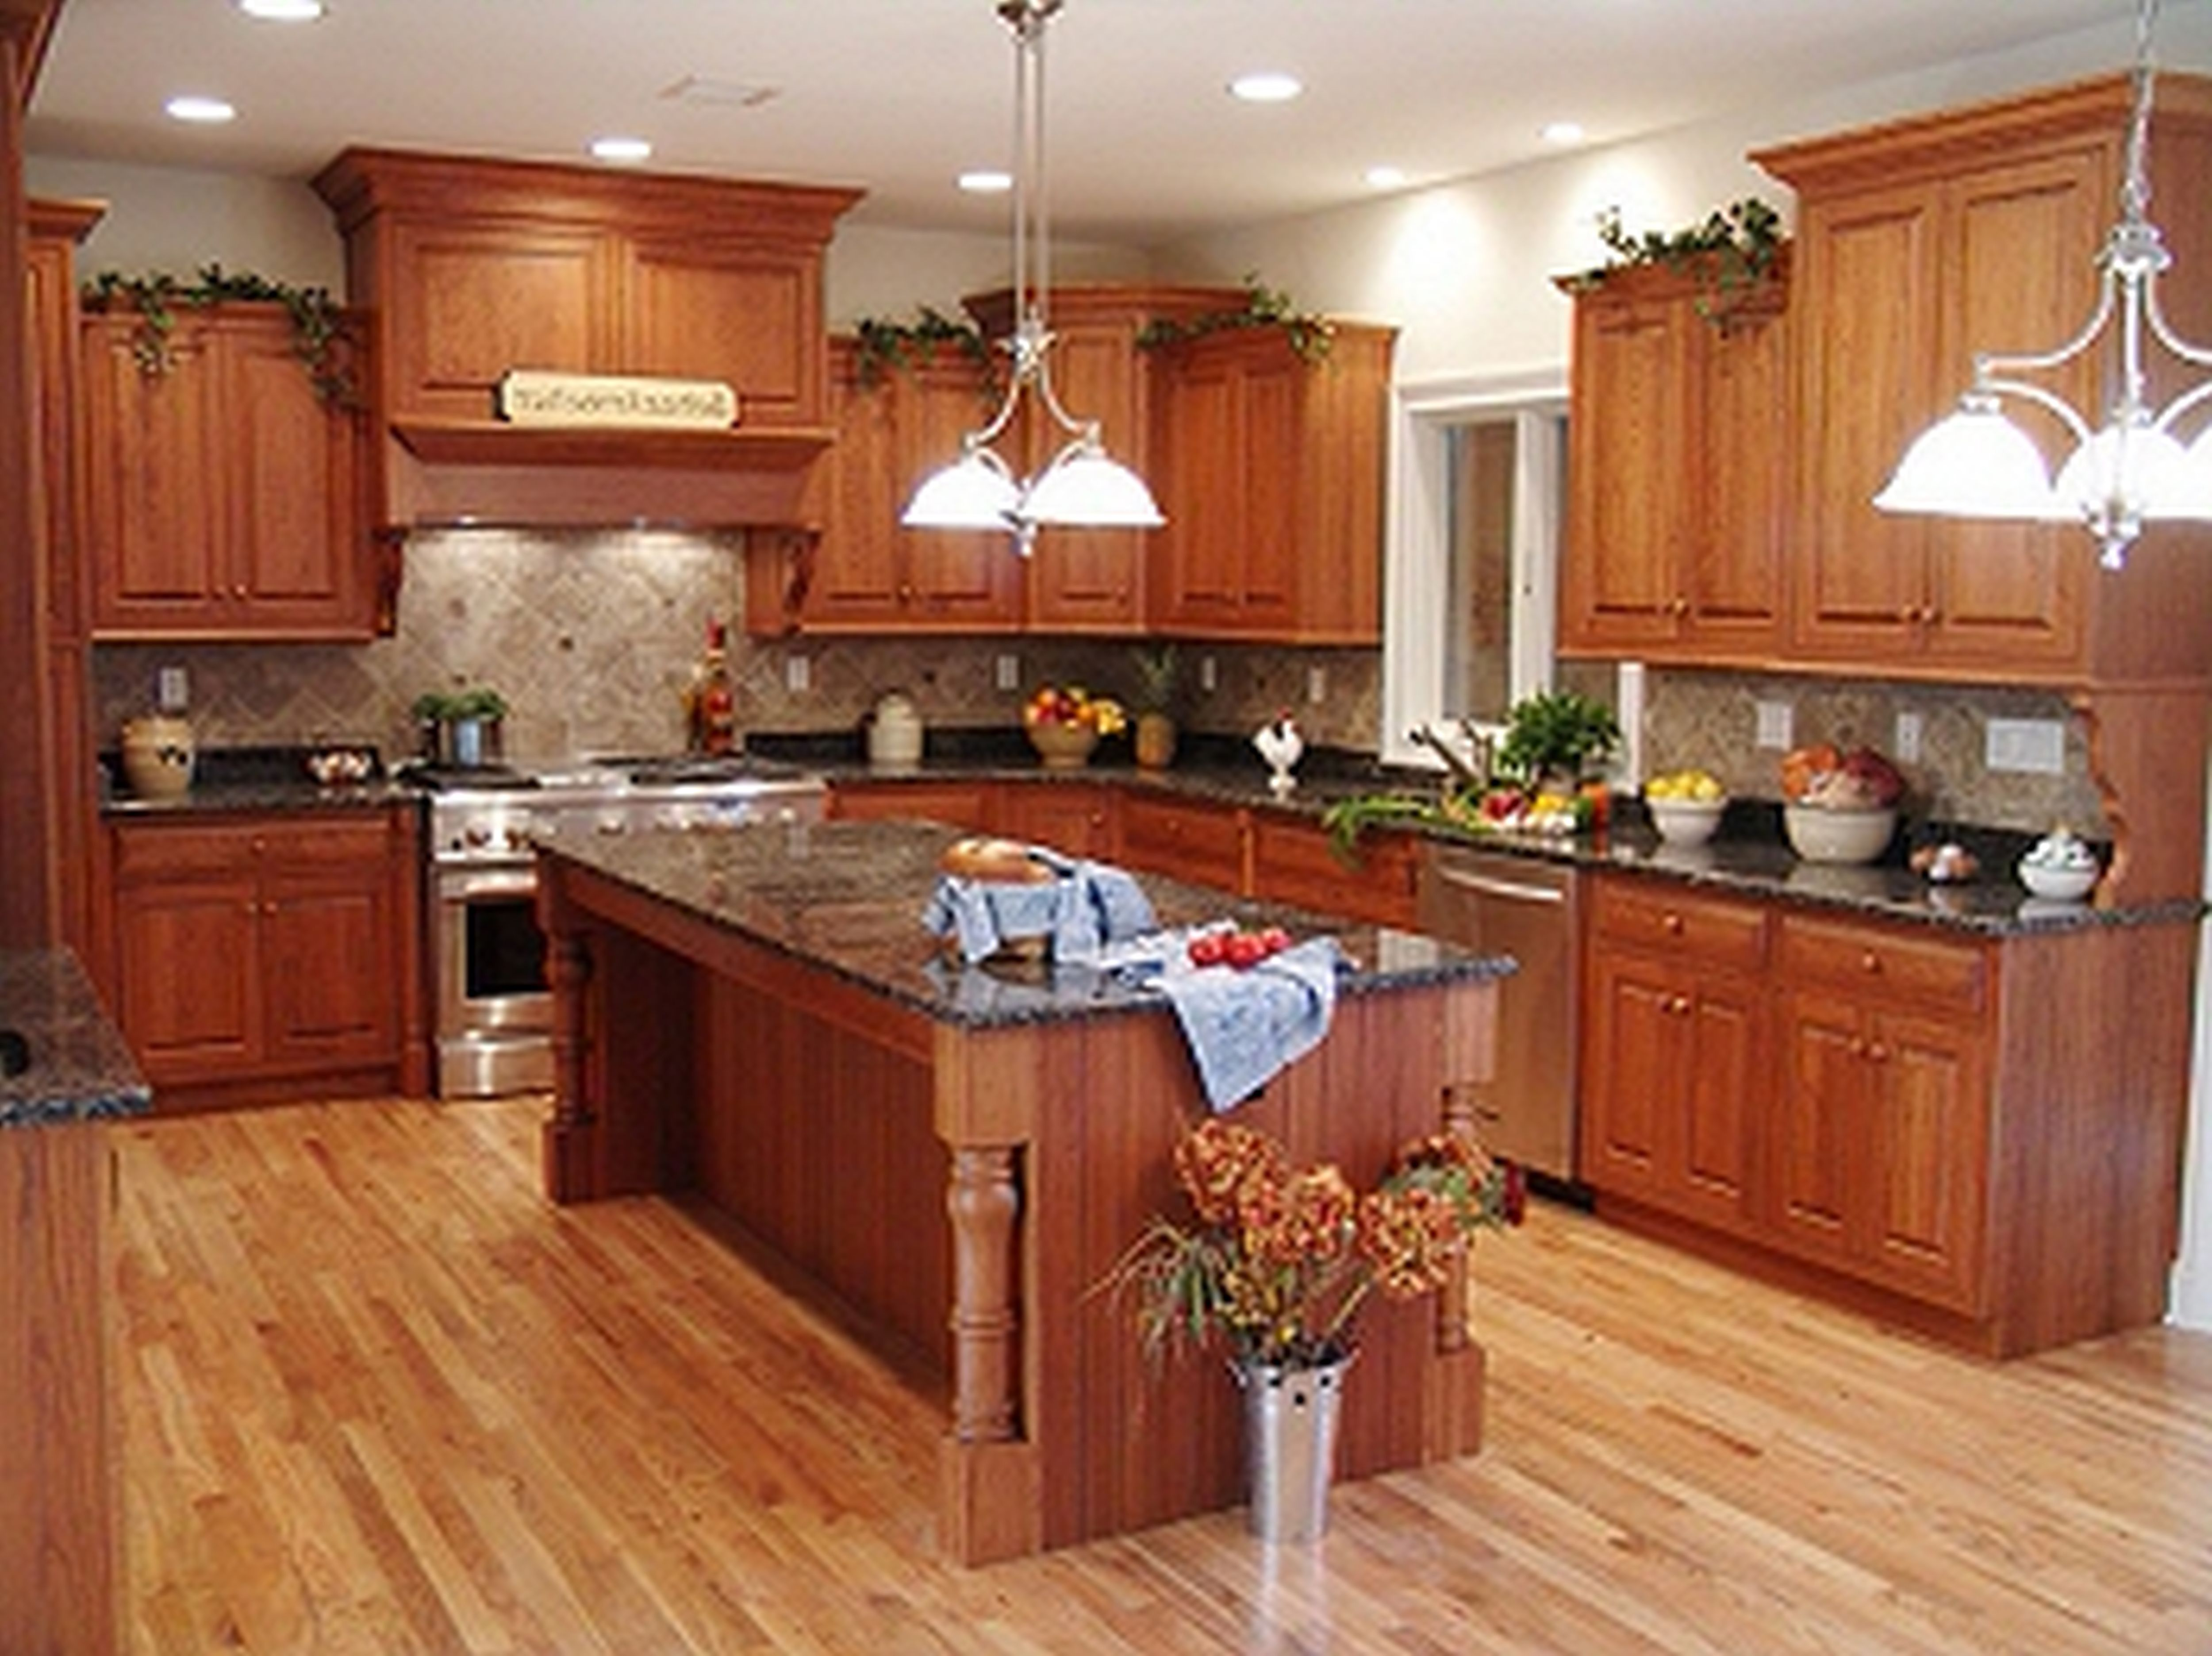 Kitchen Design Ideas With Oak Cabinets kitchen design ideas with oak cabinets 15 decorating designs in kitchen design ideas with oak cabinets Rustic Kitchen Cabinets Fake Wooden Kitchen Floor Plans With Mahogany Kitchen Cabinets